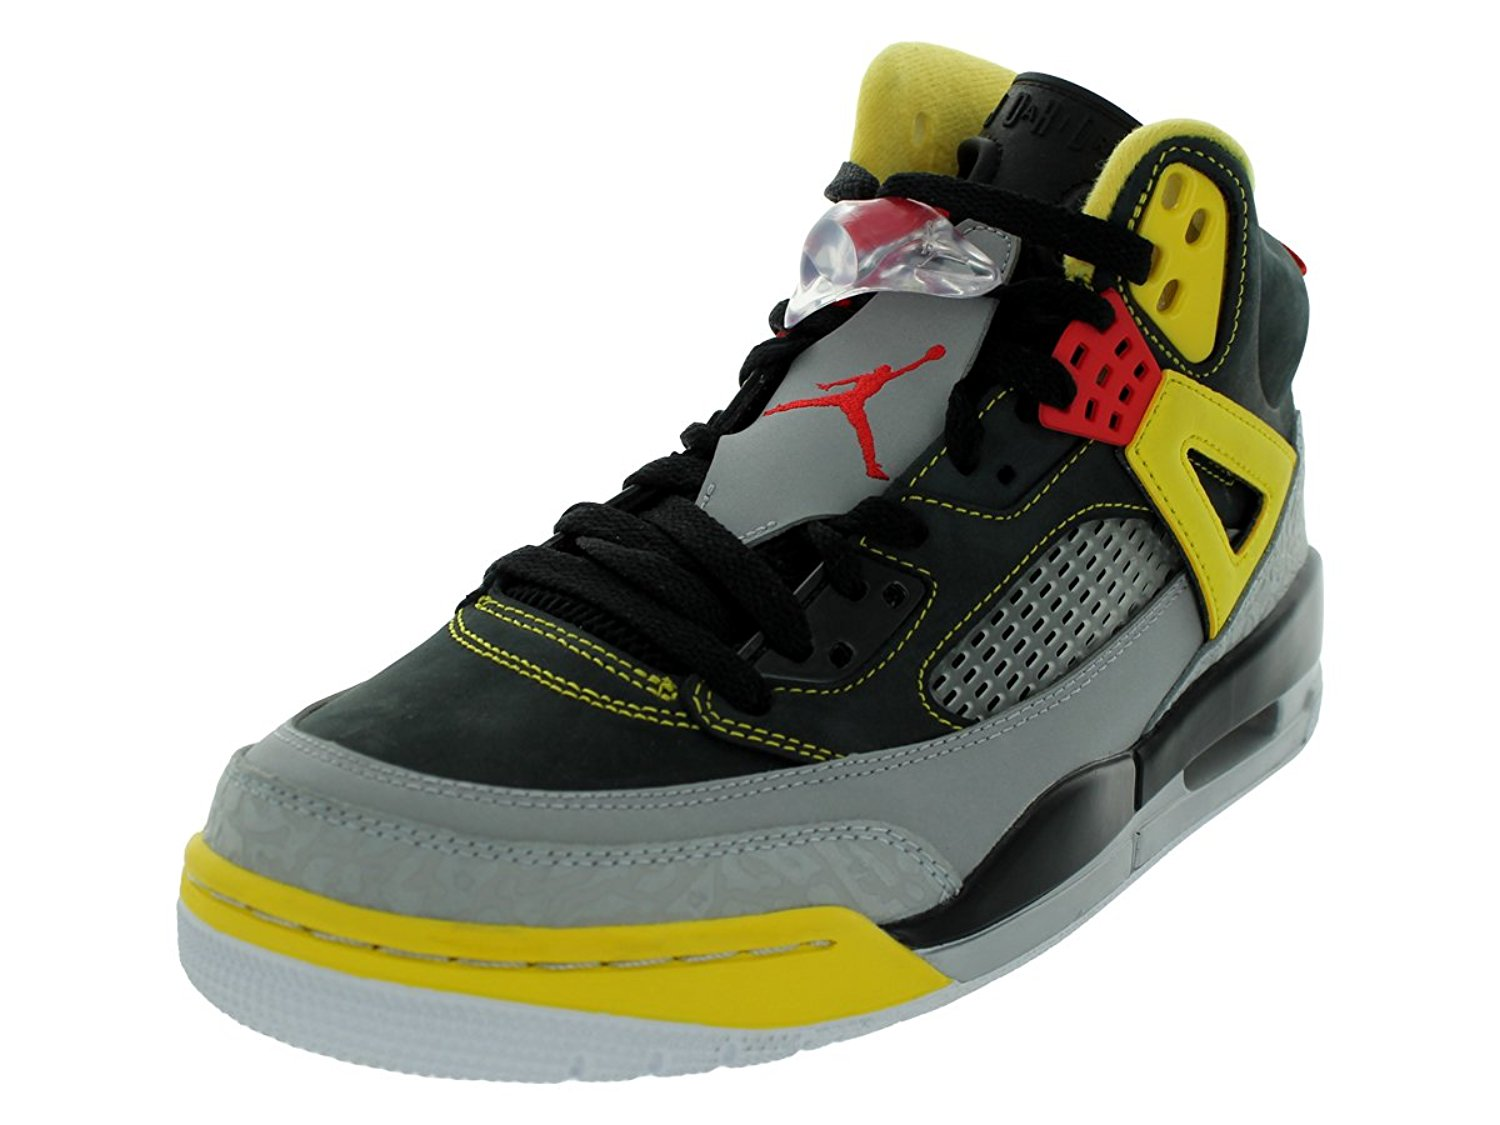 online store e82d3 52688 Get Quotations · Jordan Mens Spizike Black Red Yellow 315371-050 9.5